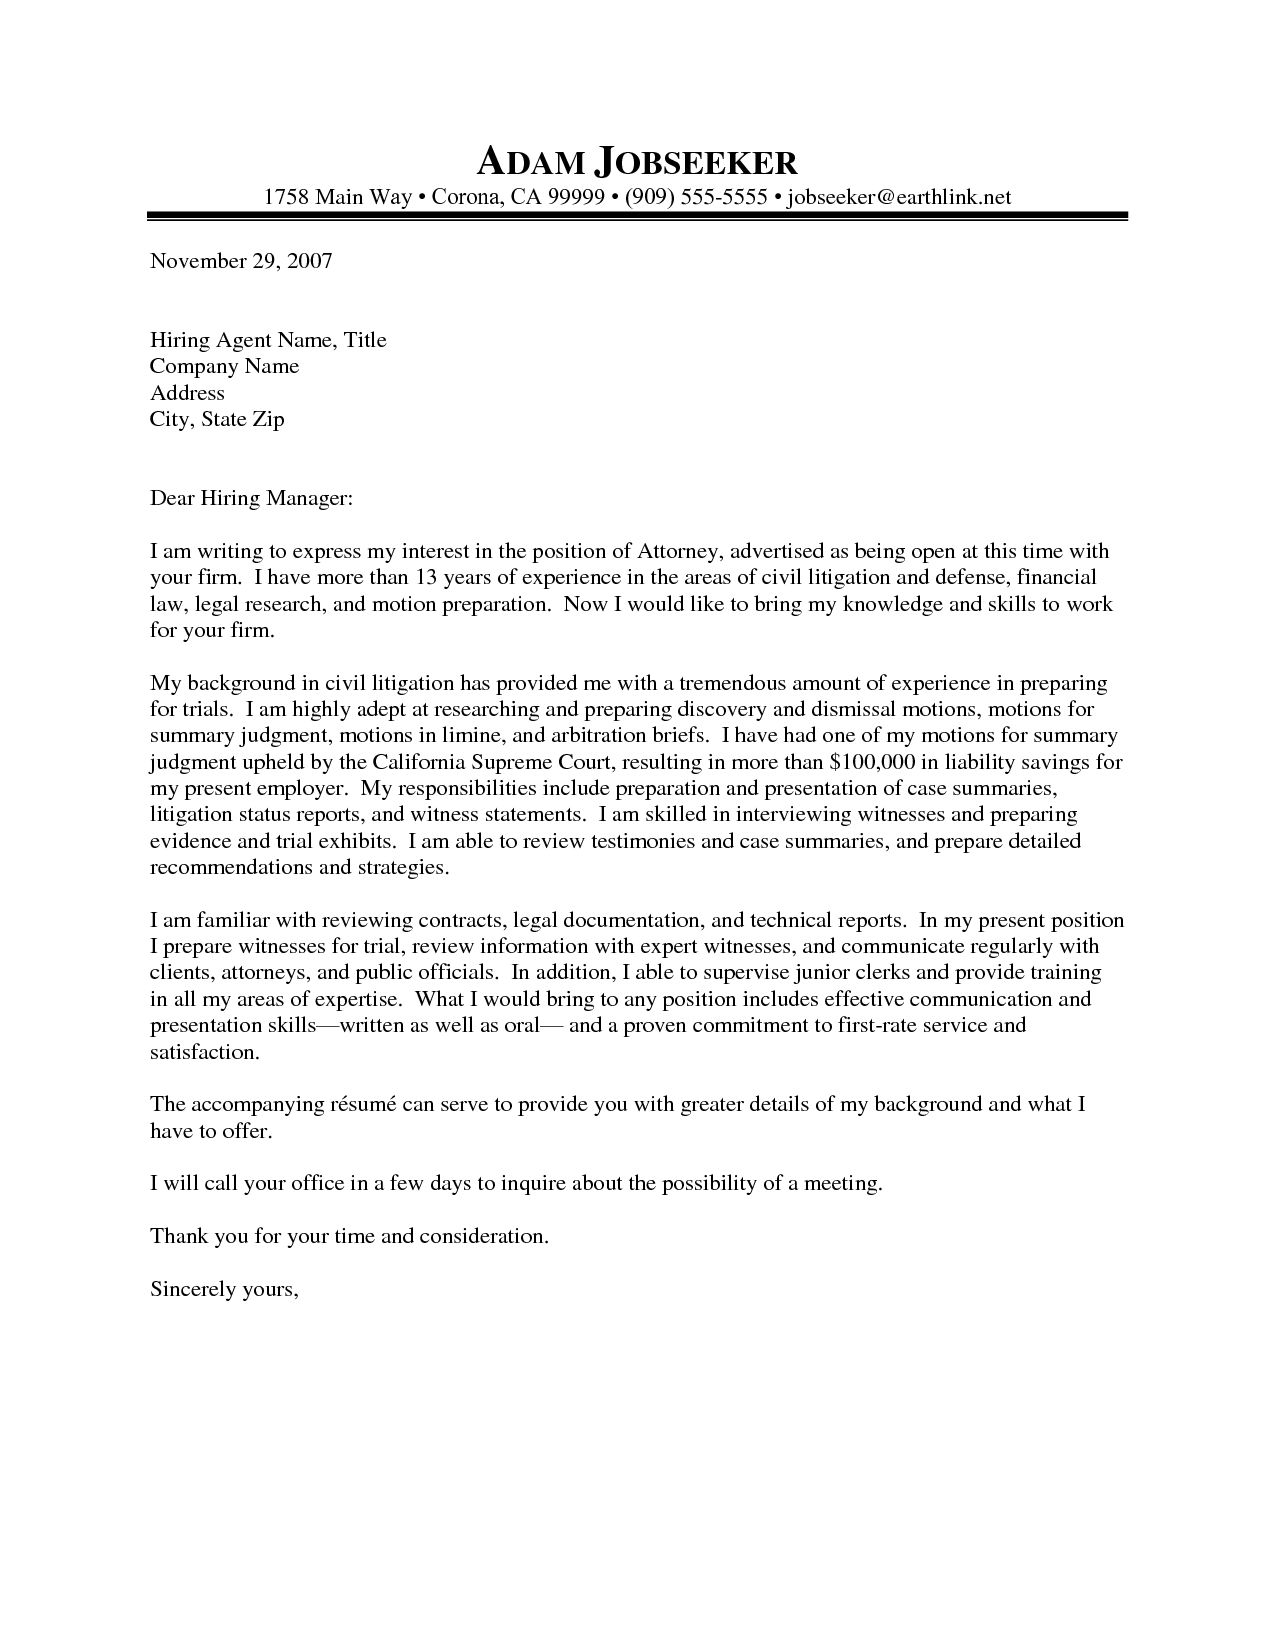 Law Firm Cover Letter Sample The Letter Sample Cover Letter Sample ...